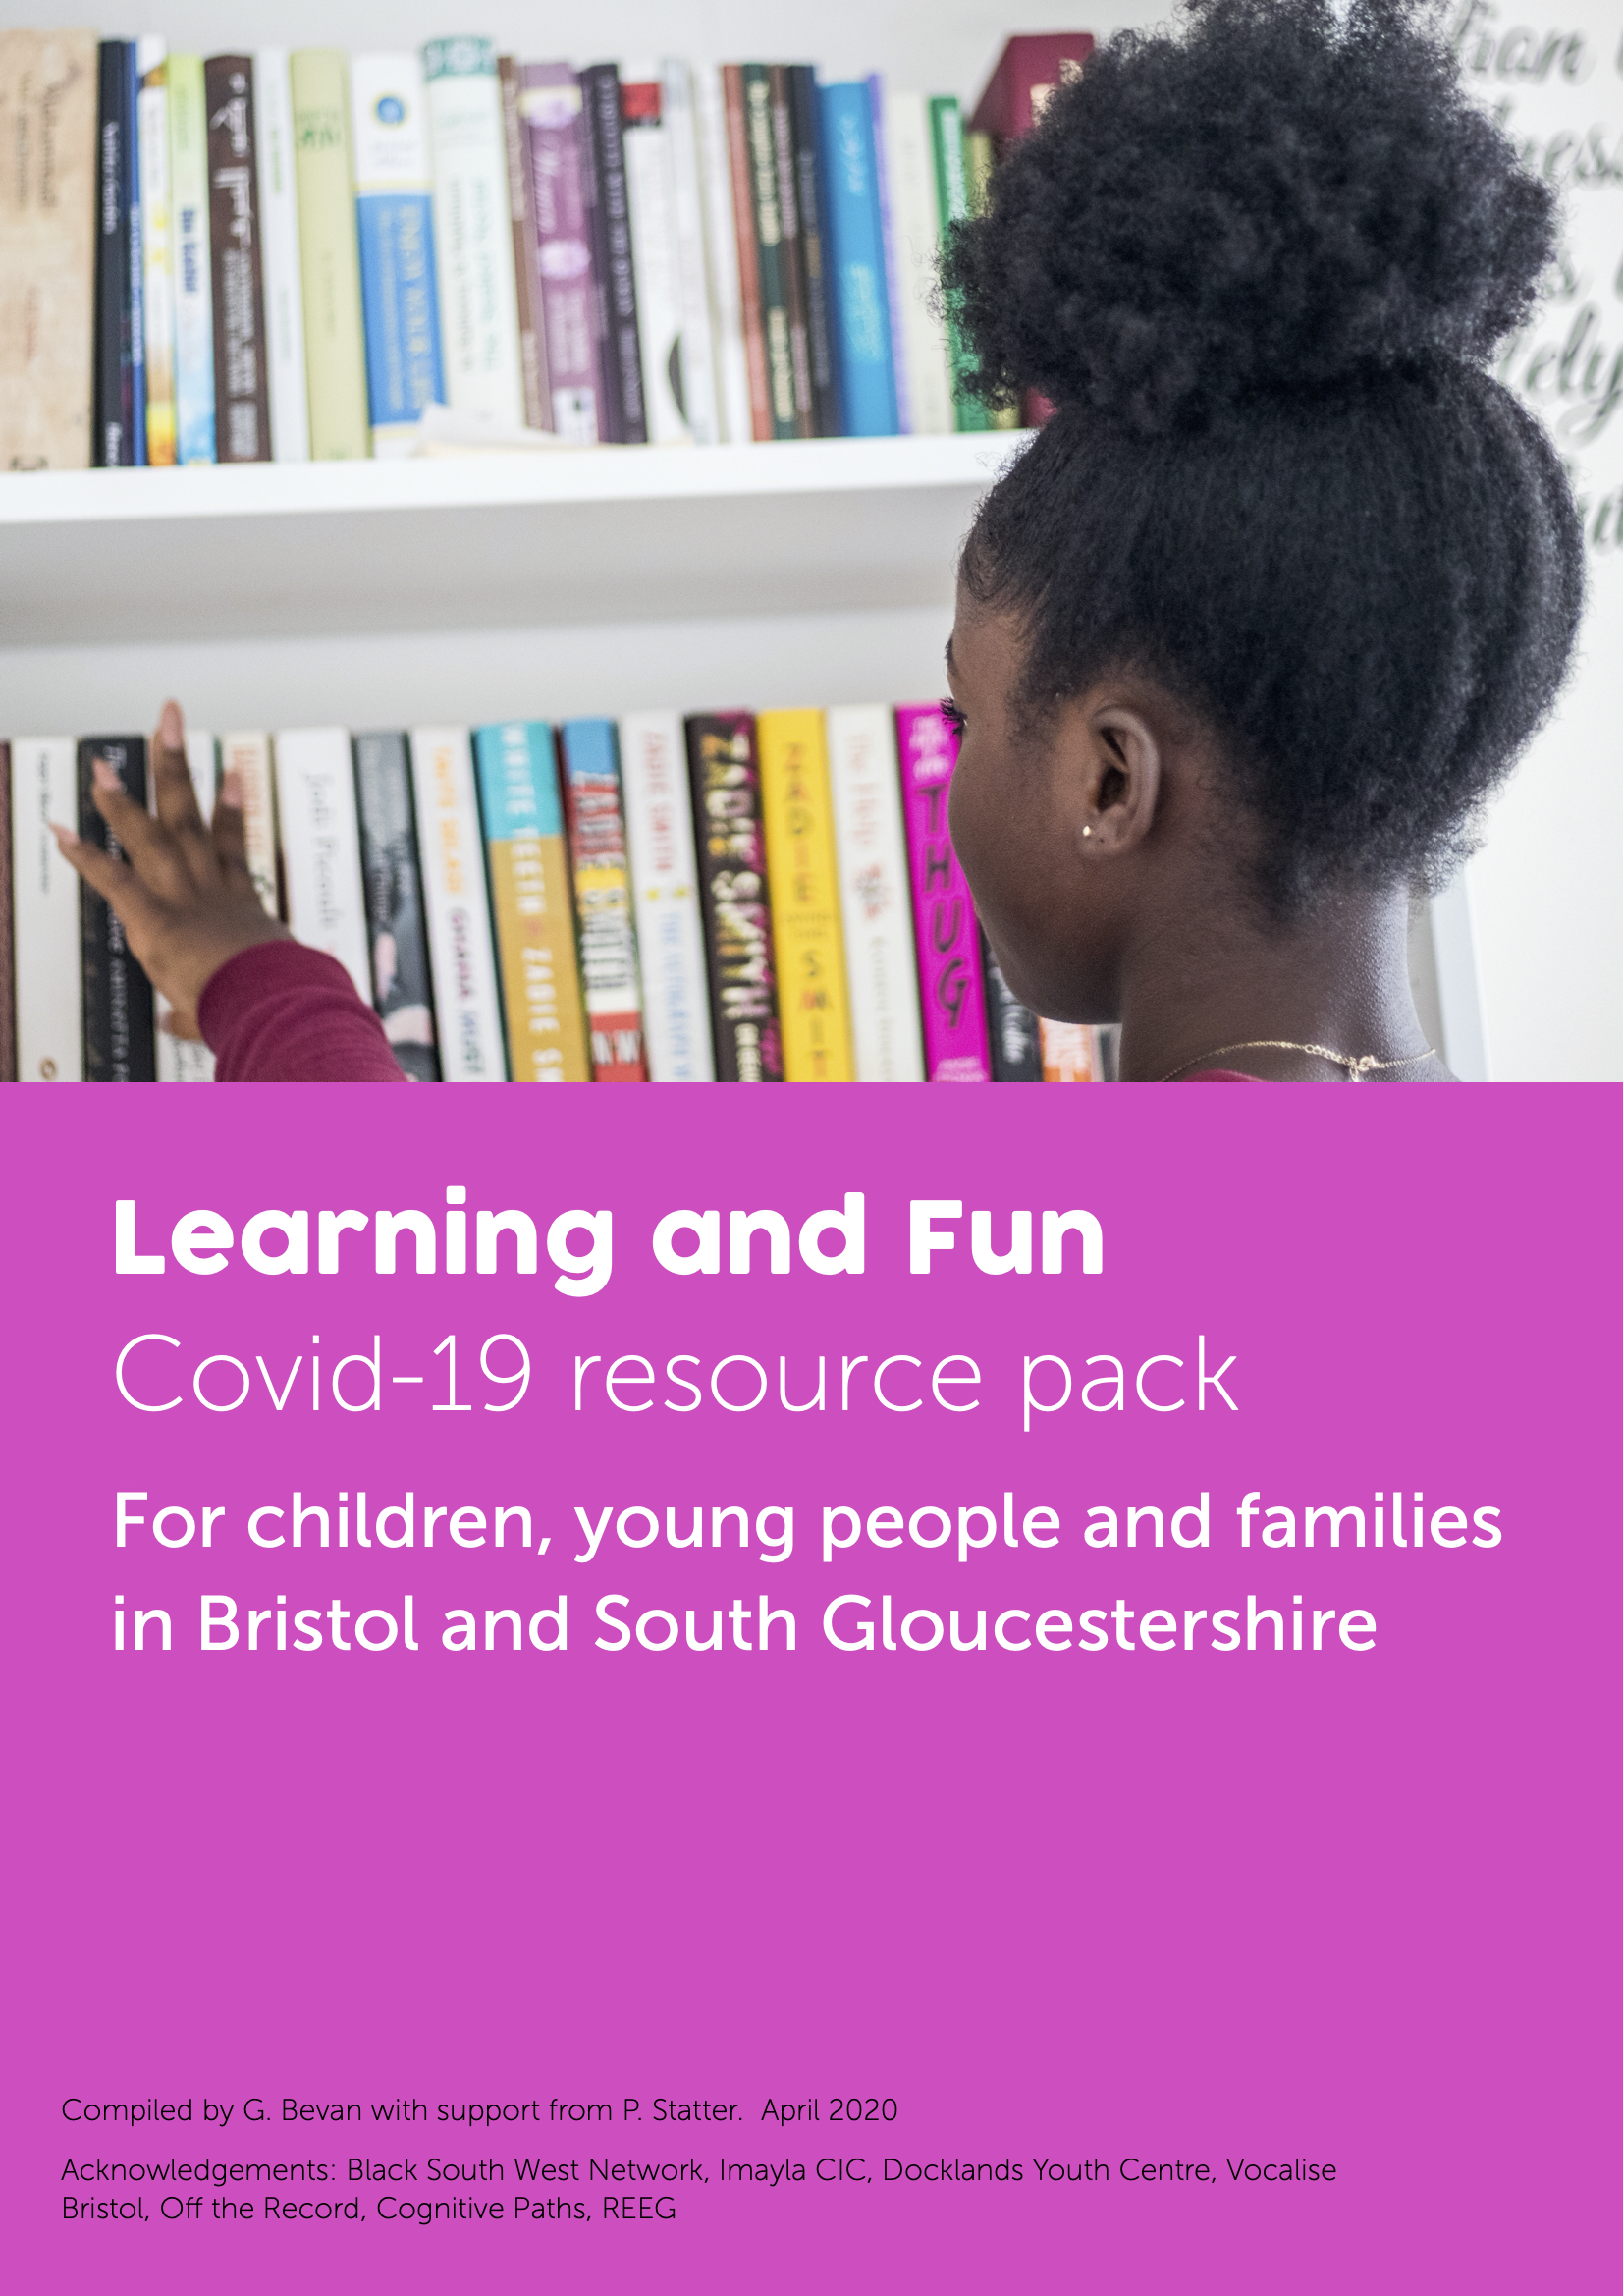 Covid-19 Educational Resource Pack